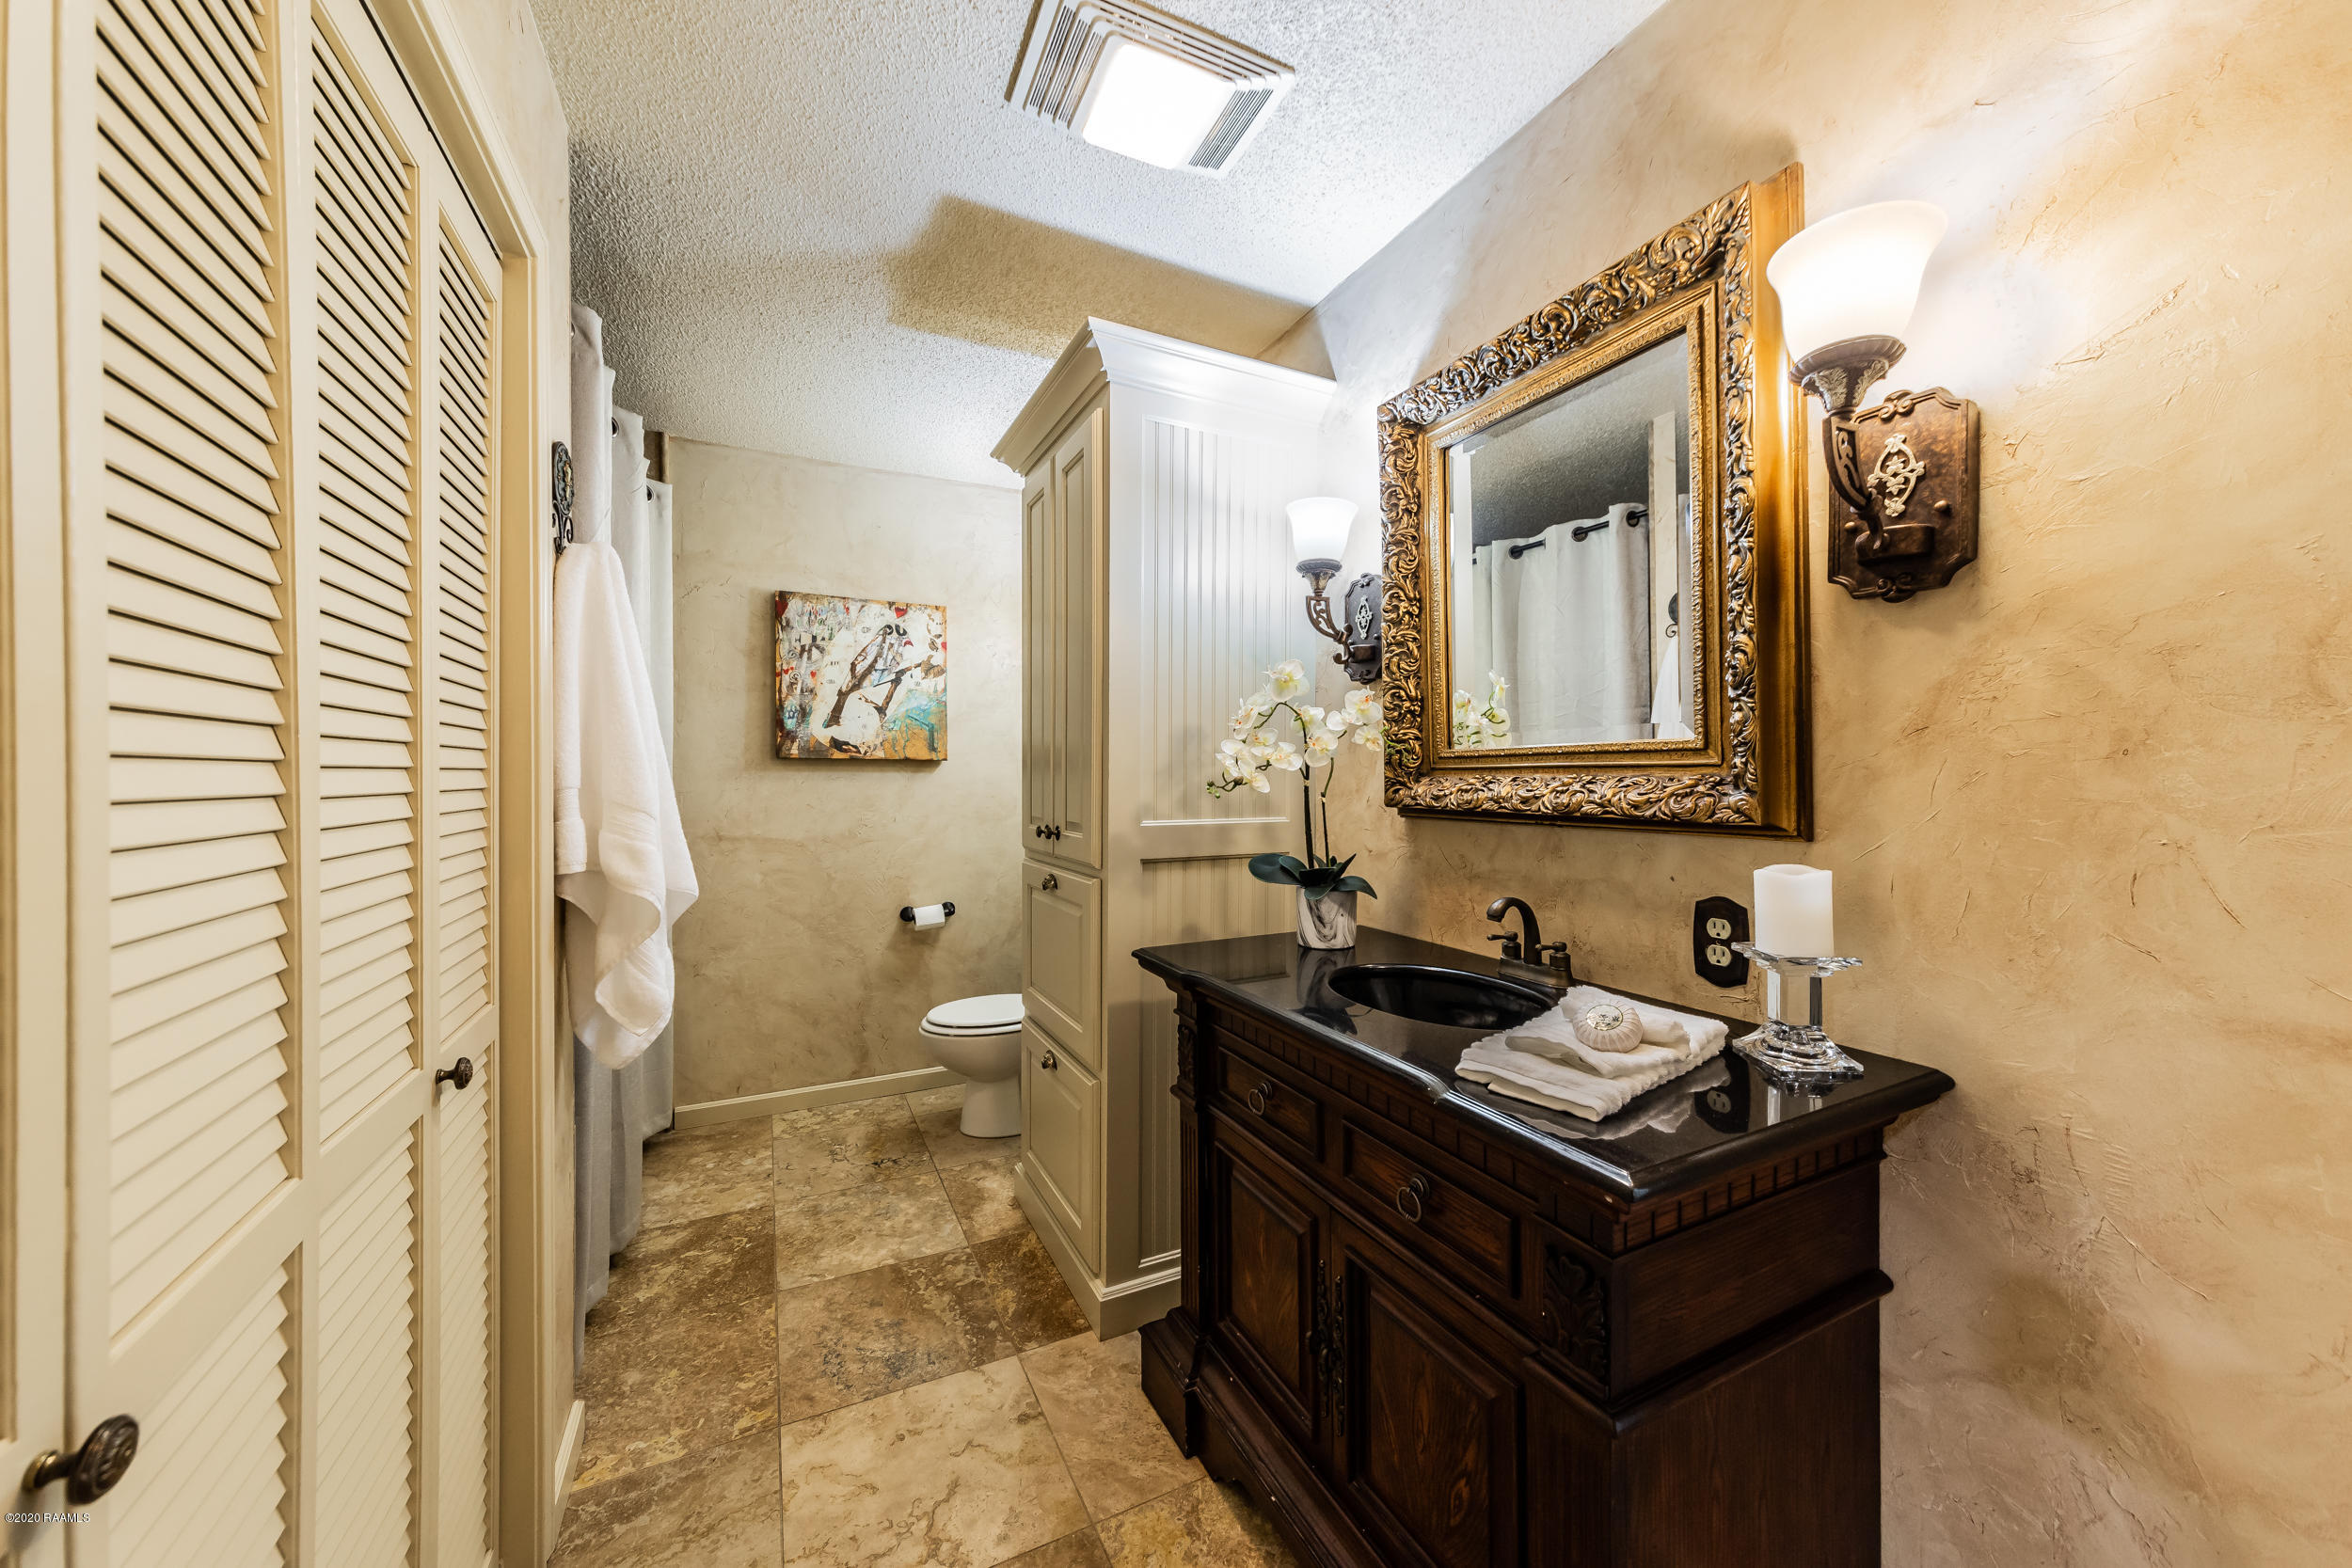 1008 Carriage Light Loop, Youngsville, LA 70592 Photo #15